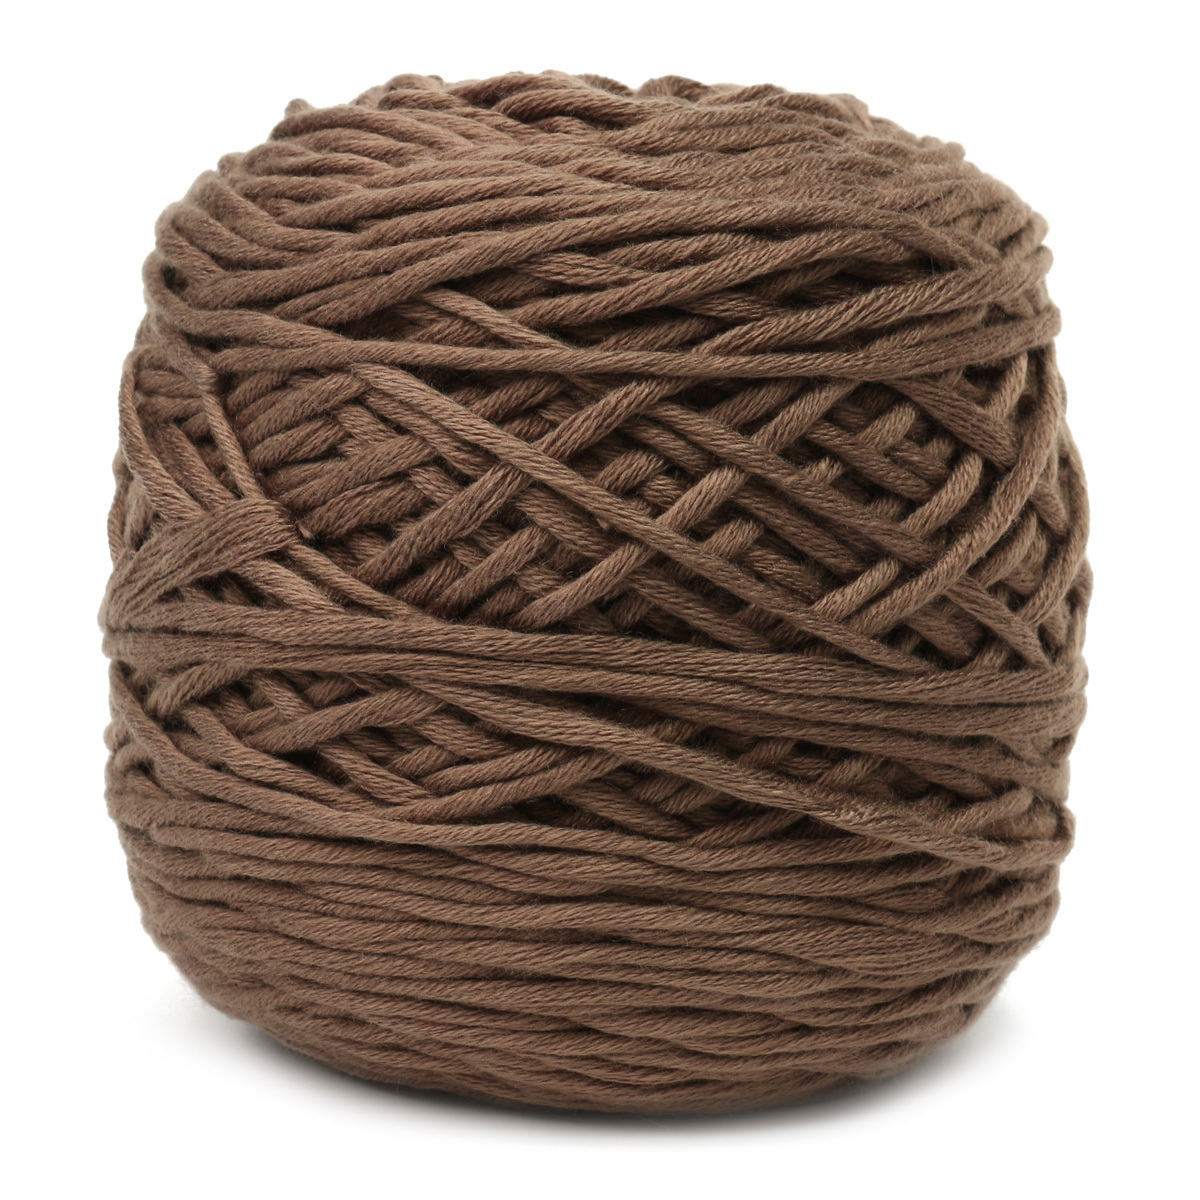 Soft skein cotton natural worsted wool yarn ball 200g for Craft with woolen thread